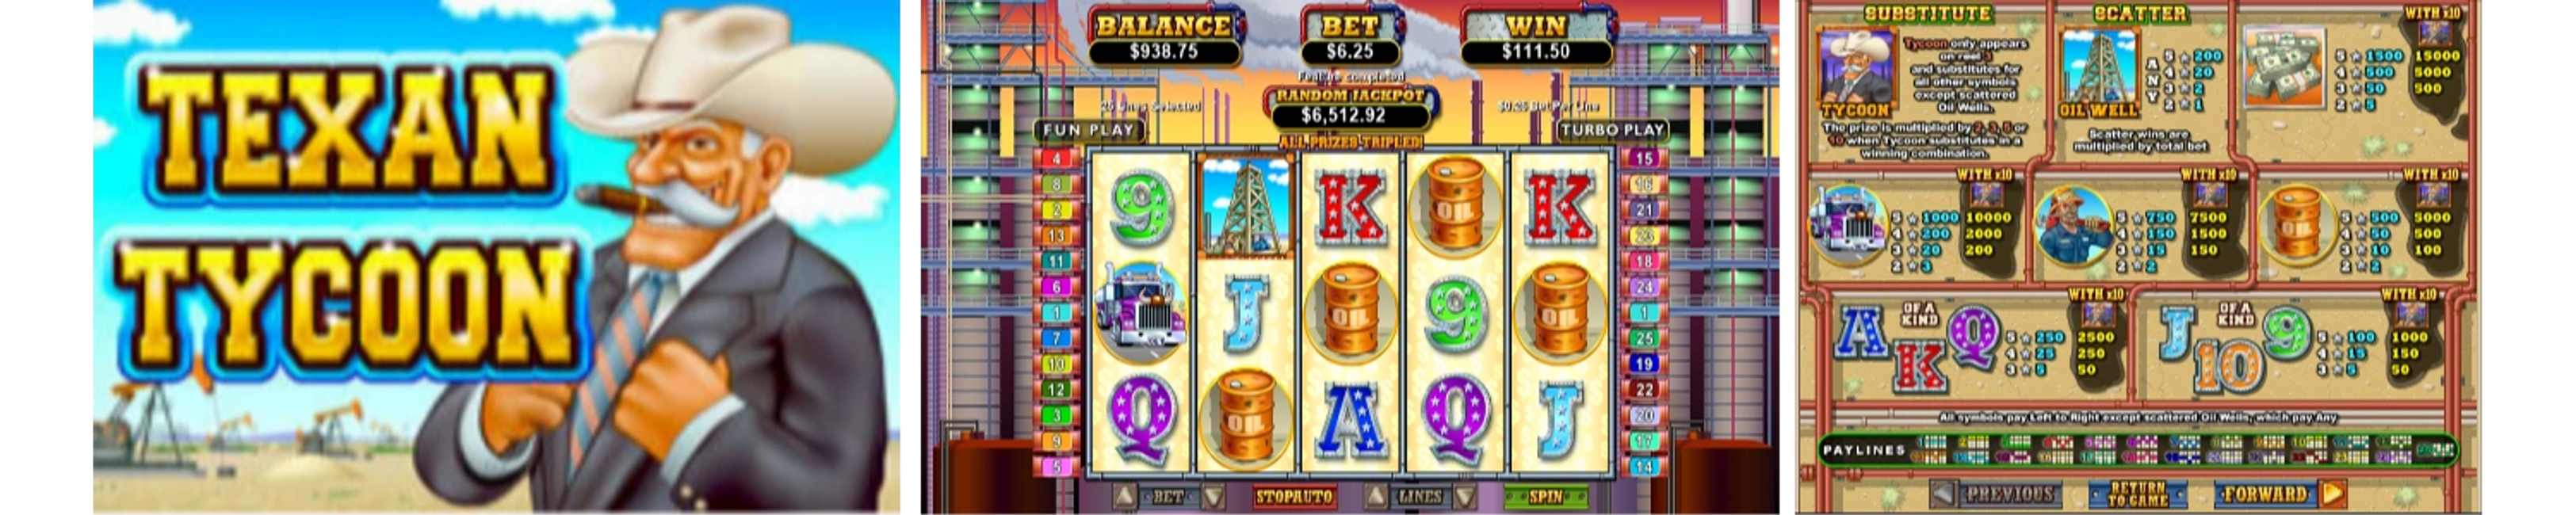 Texan Tycoon Online Video Slot Review